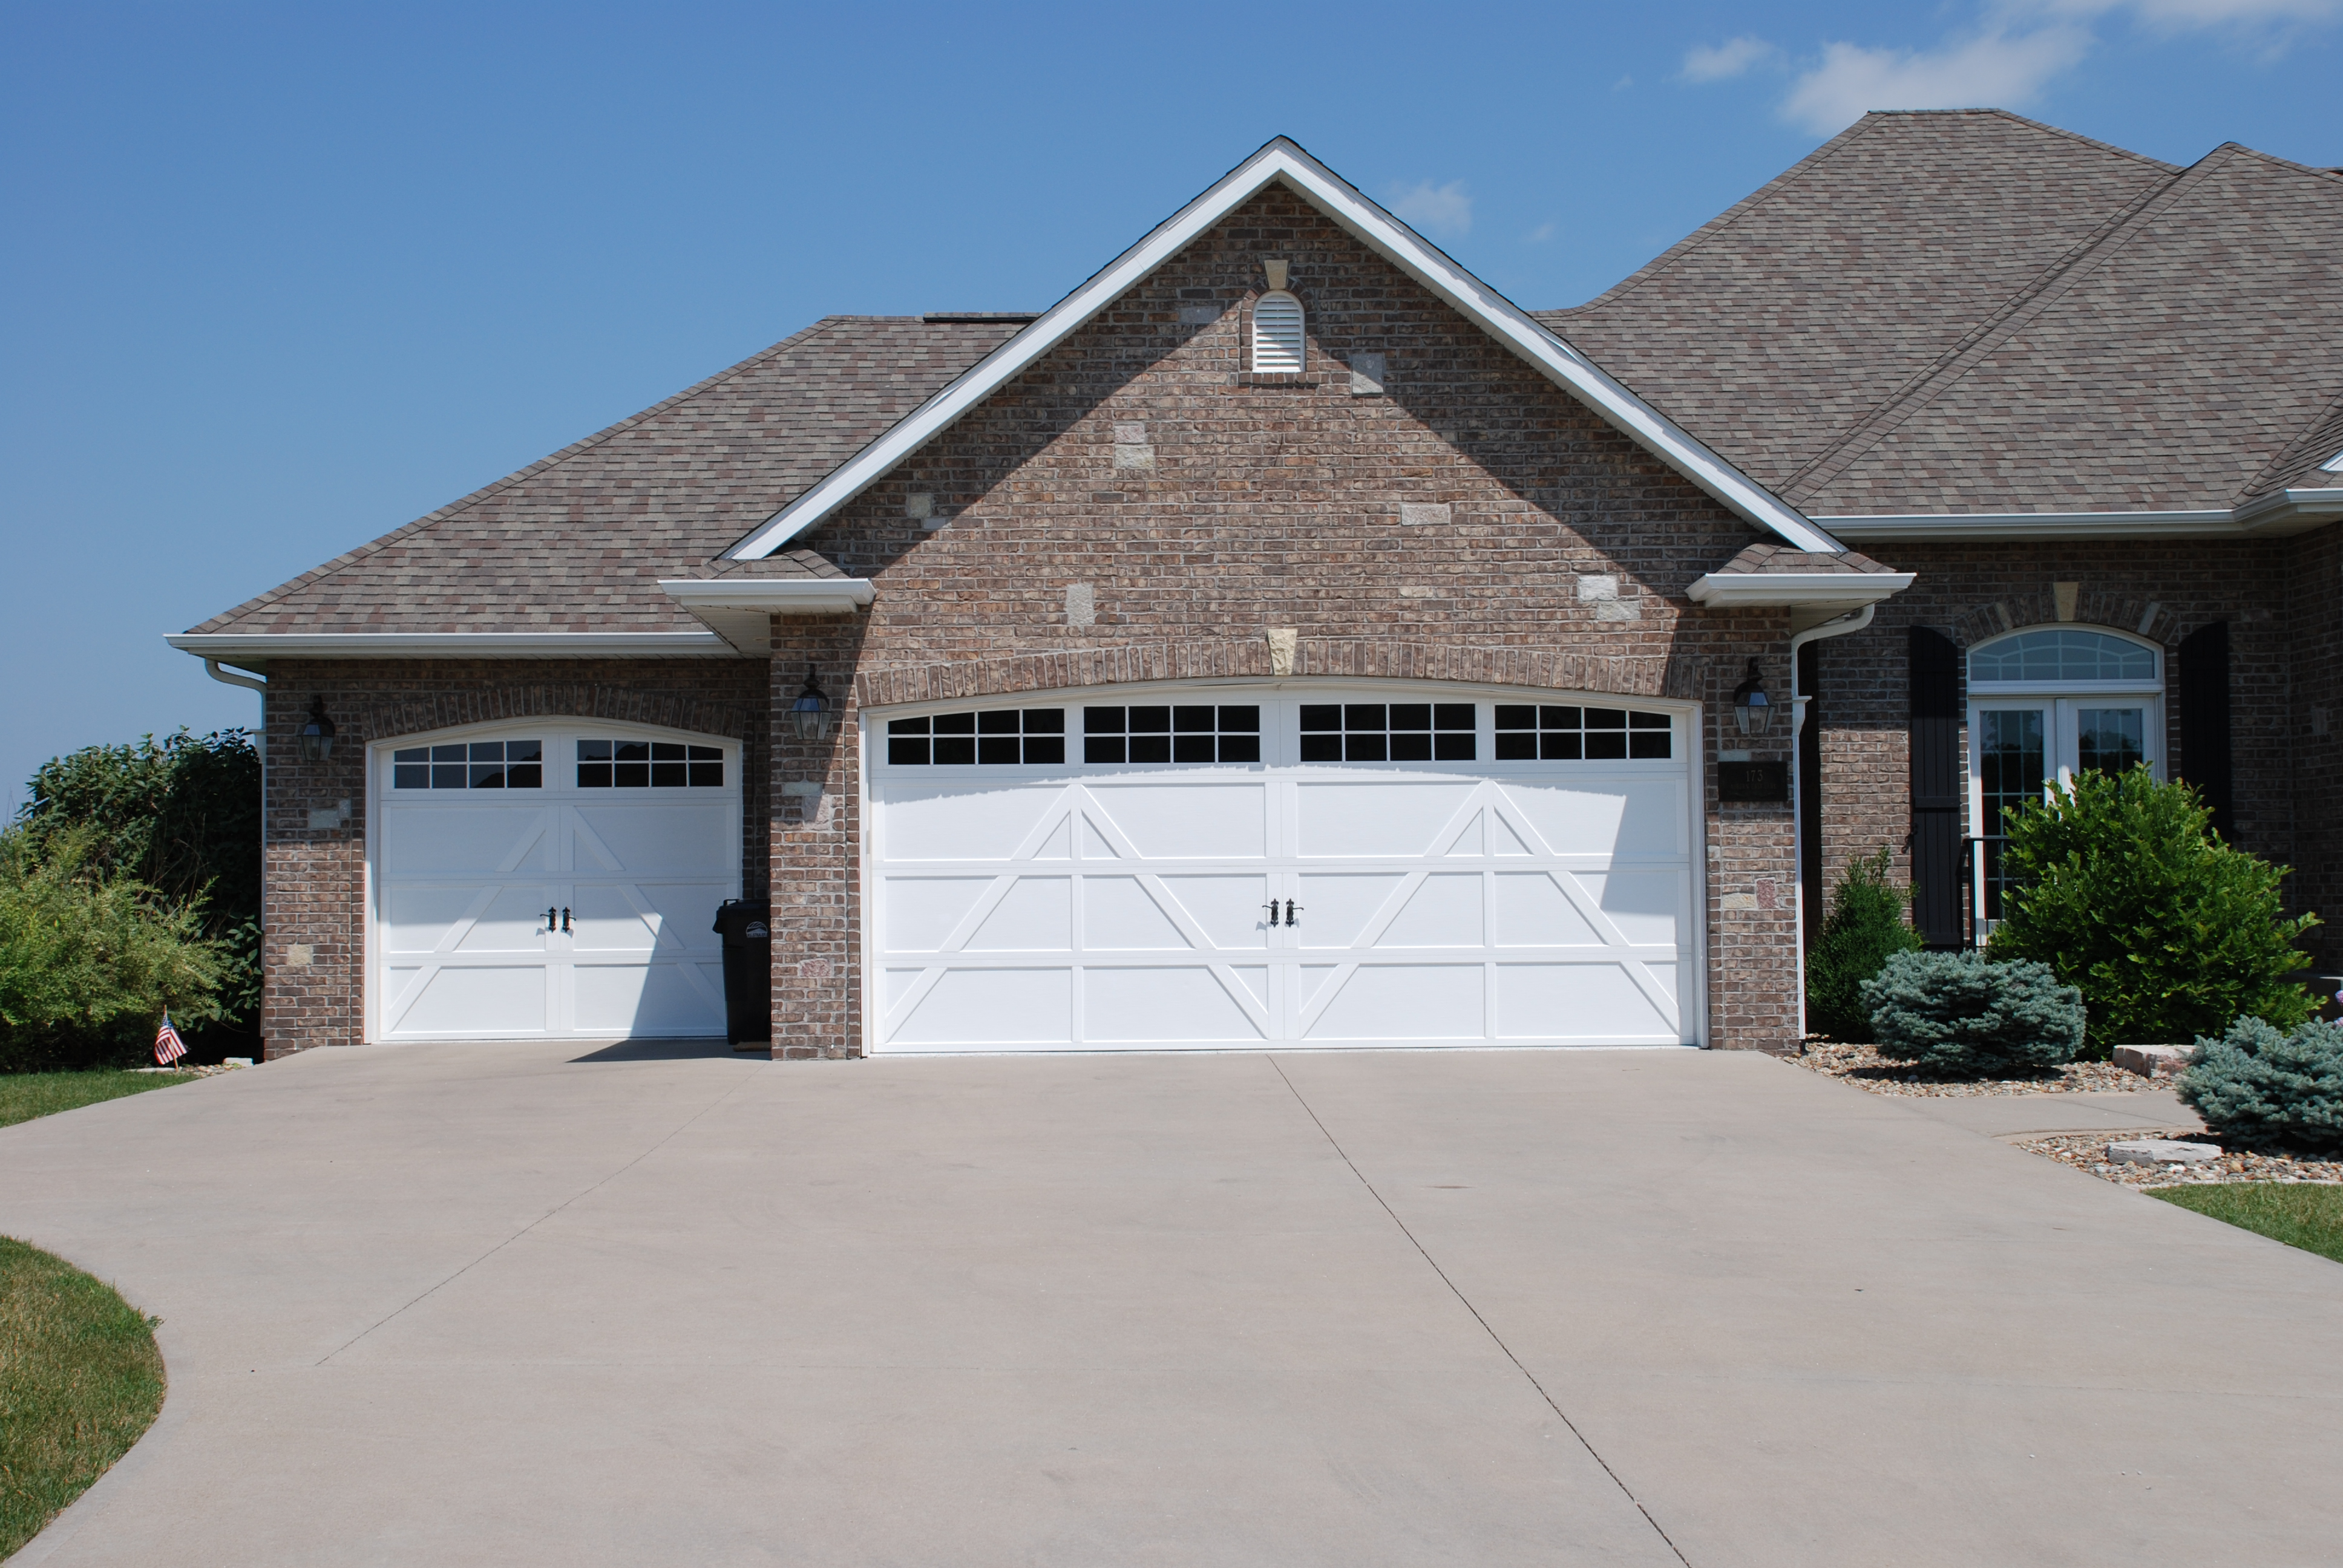 2592 #3C658F Residential Door Applications image Residential Overhead Garage Doors 36733872